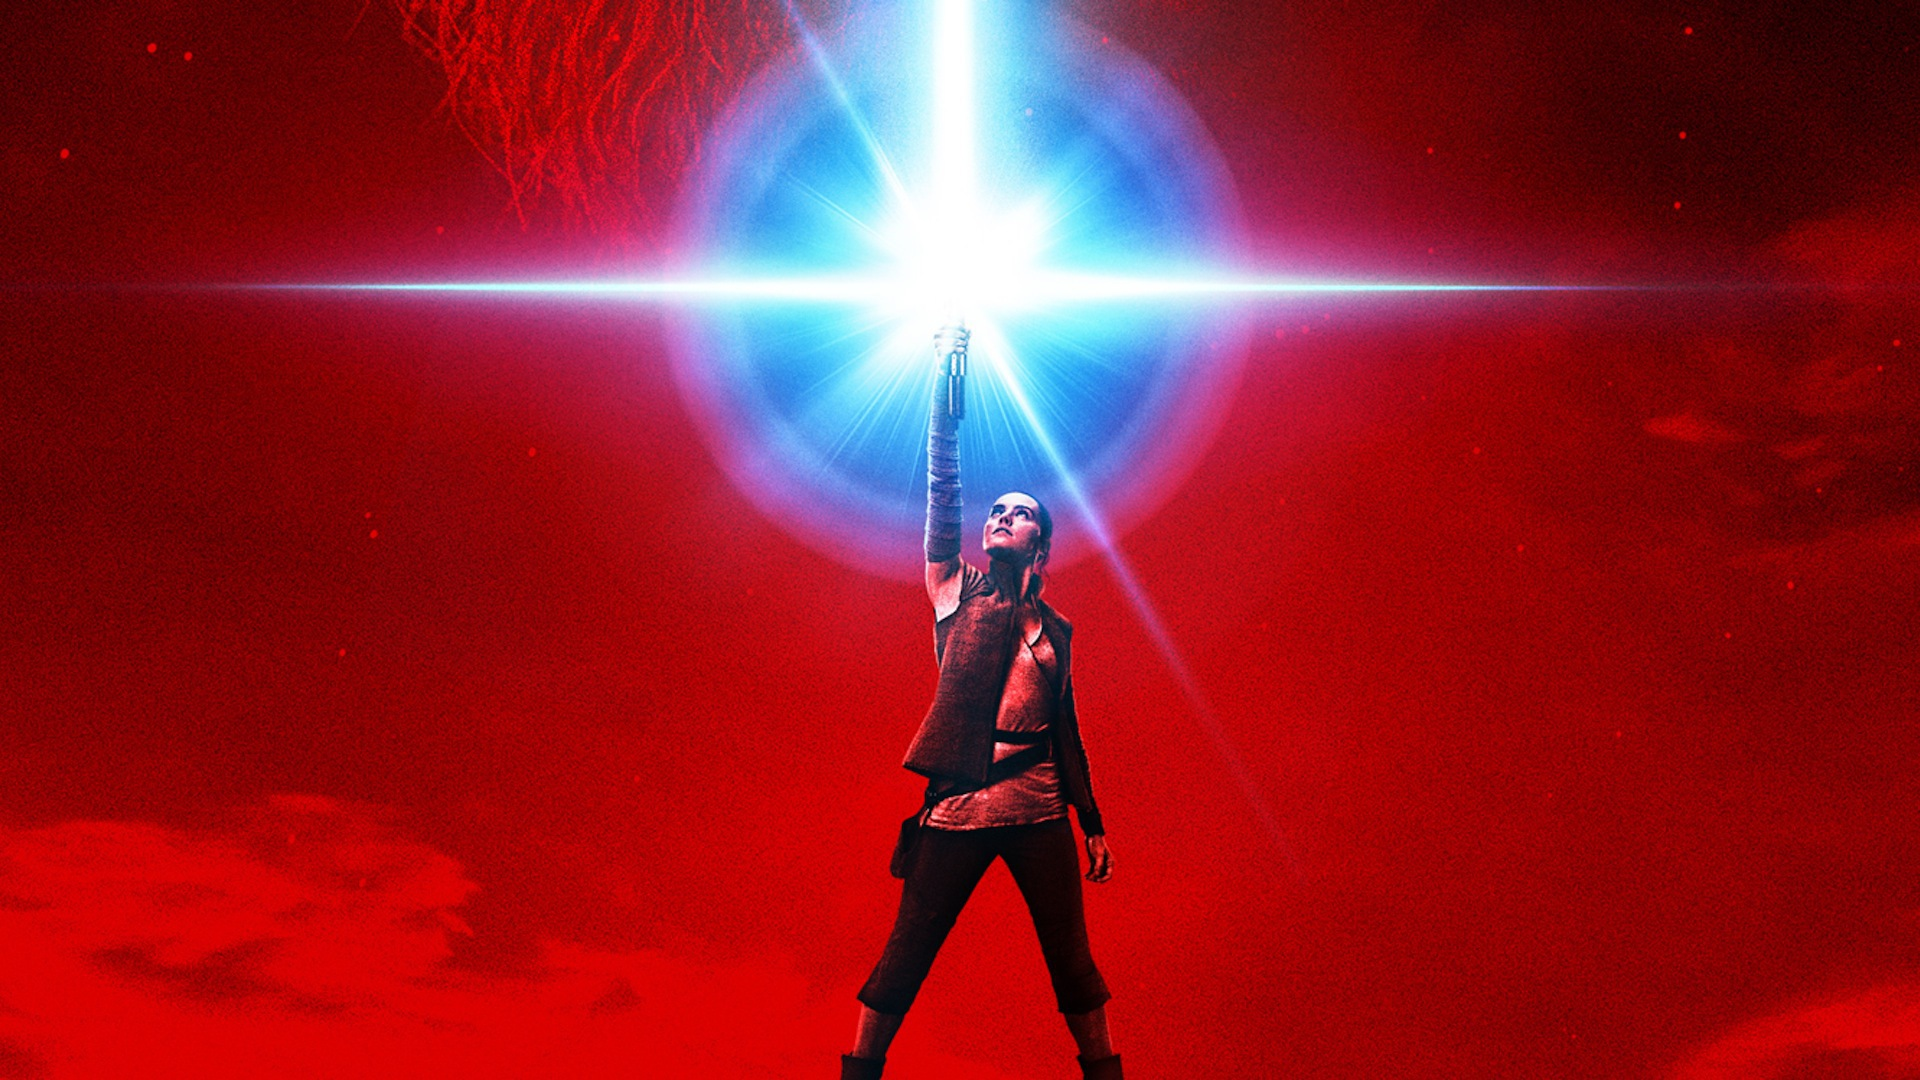 Star Wars: The Last Jedi Wallpapers Images Photos Pictures